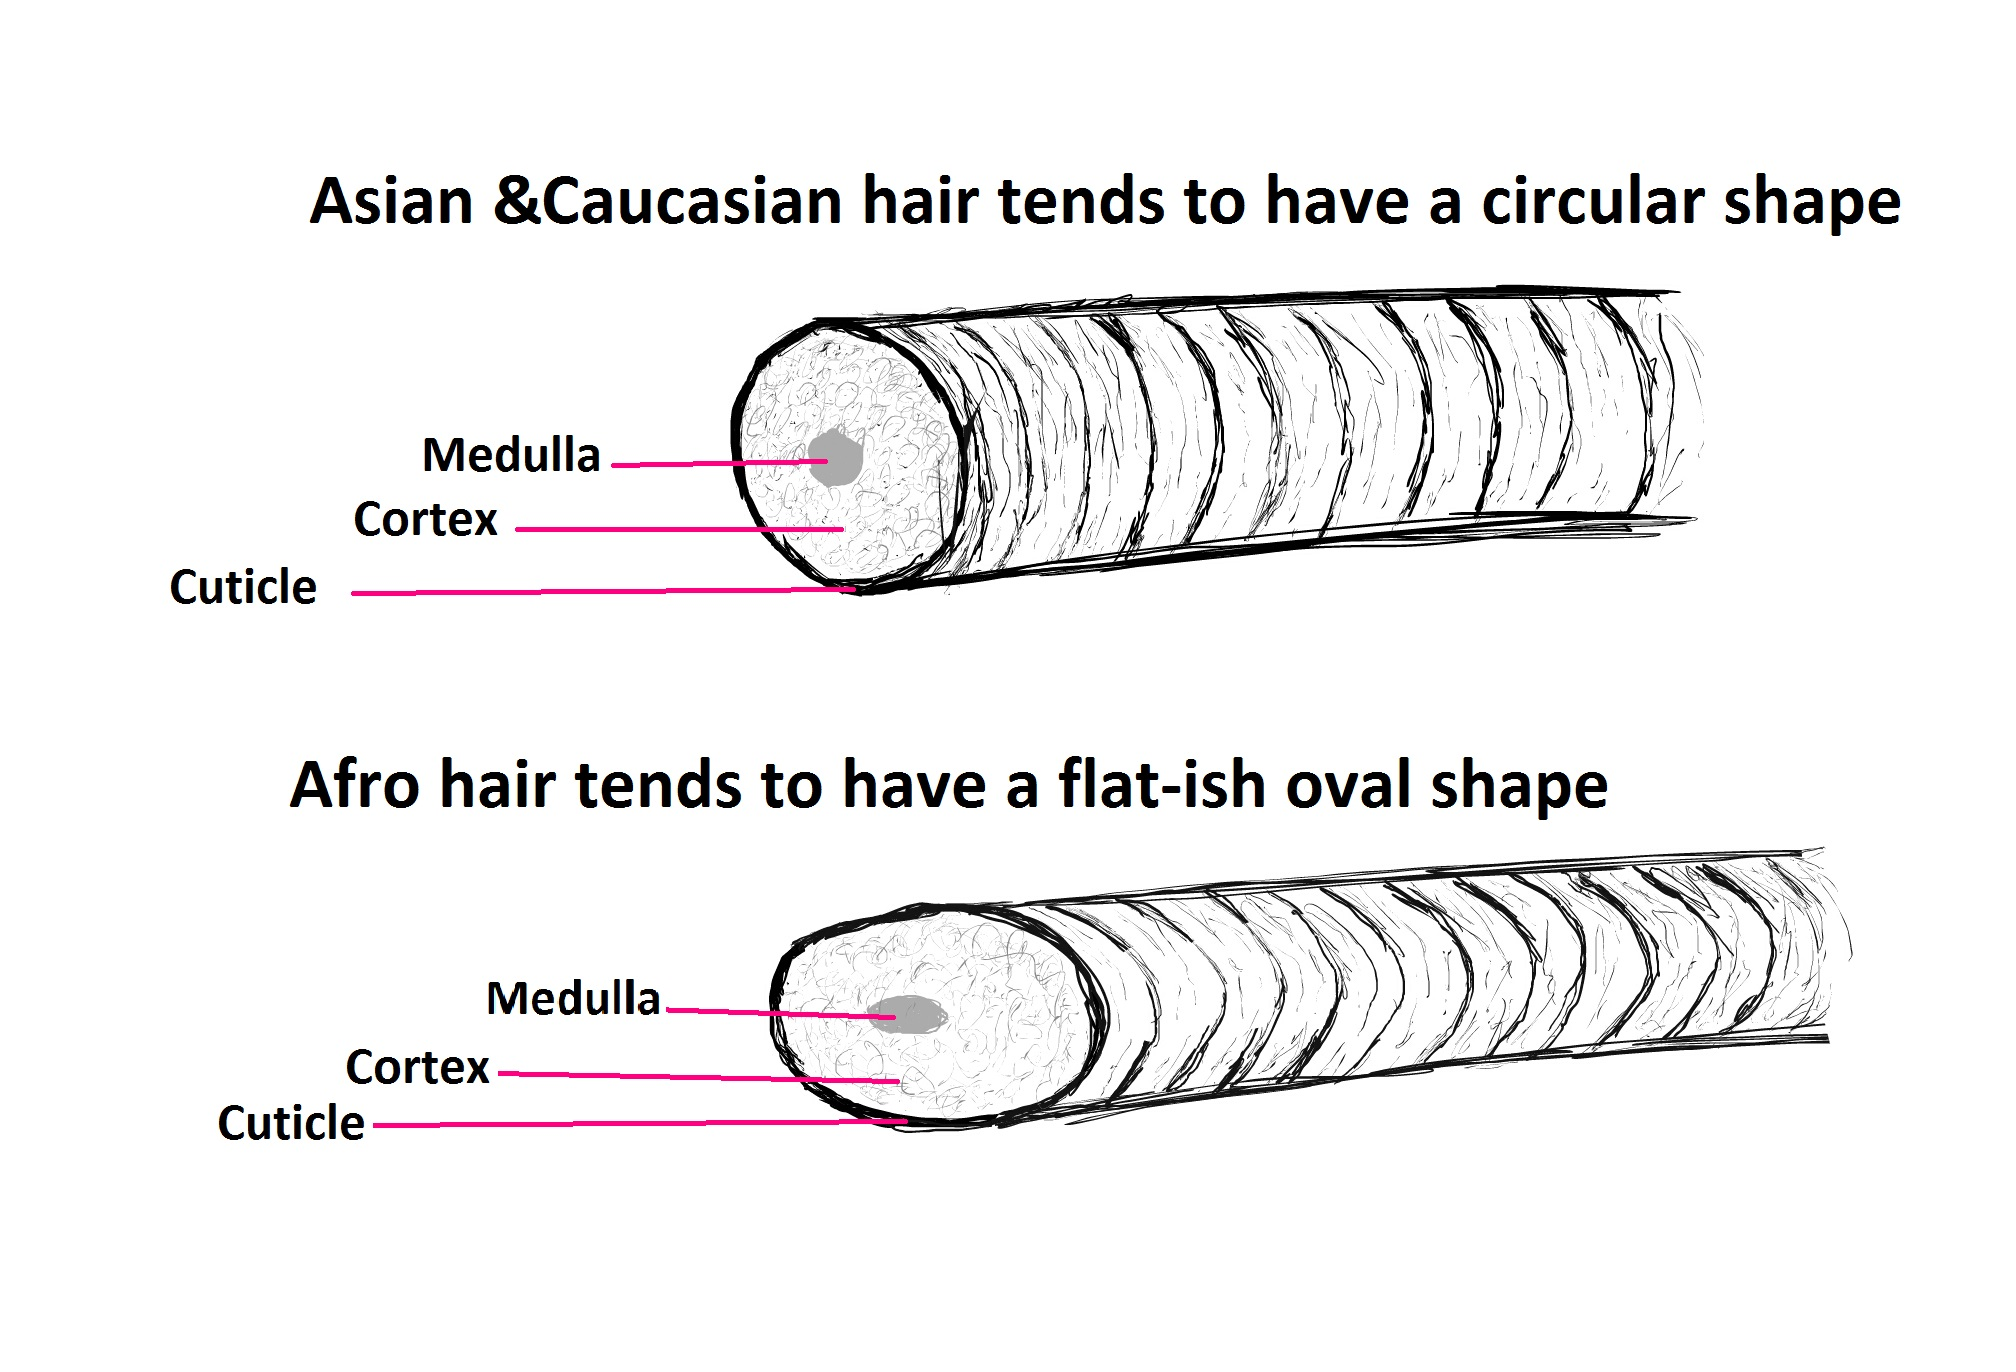 What Is It About Our Hair Diffrences Between Afro Asian And Caucasian Hair Rehairducation